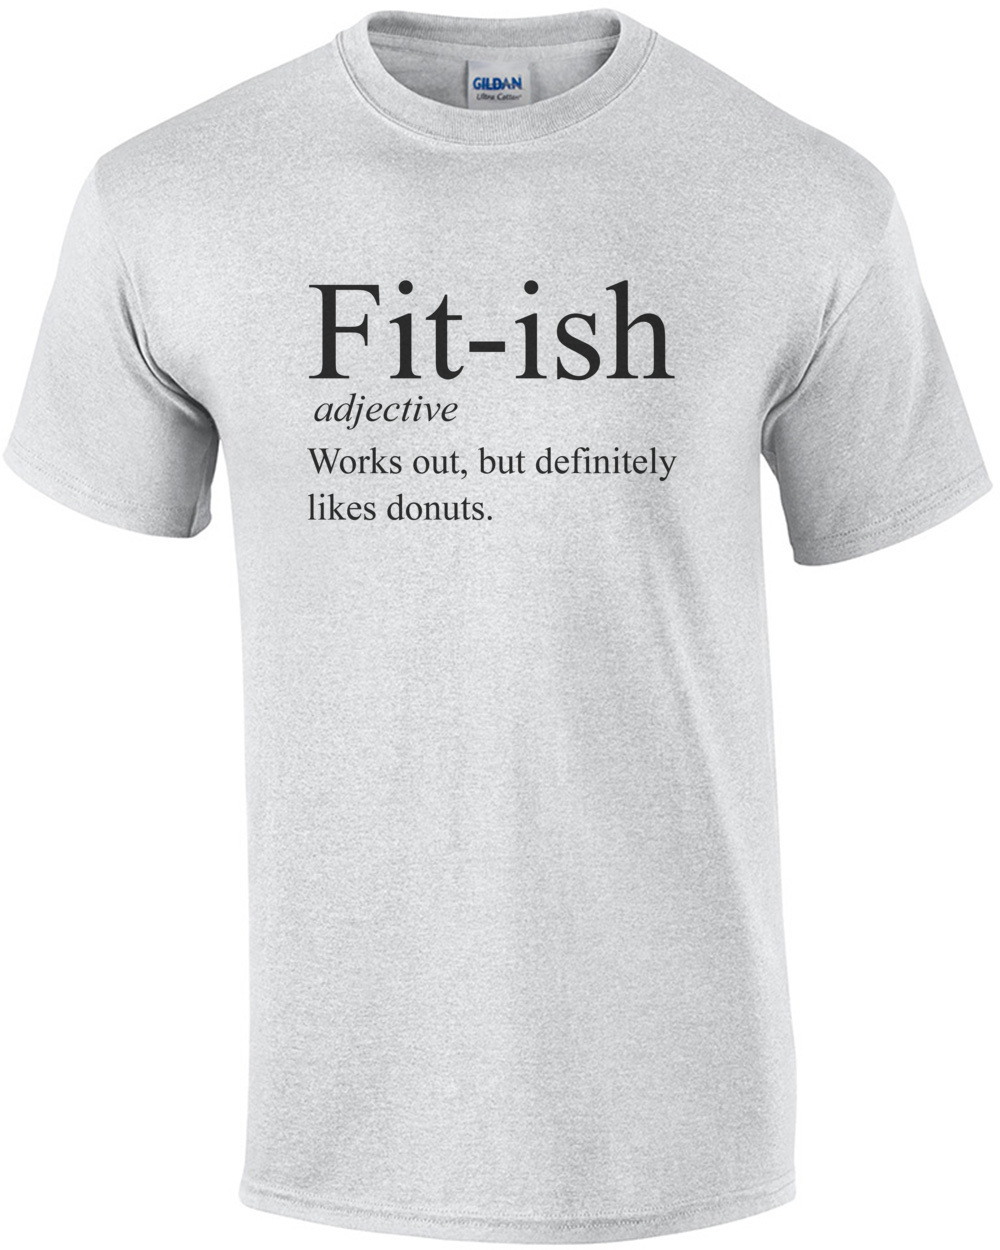 7e3c6fa0 Fit-ish - adjective - works out, but definitely likes donuts - funny work  out / exercise t-shirt